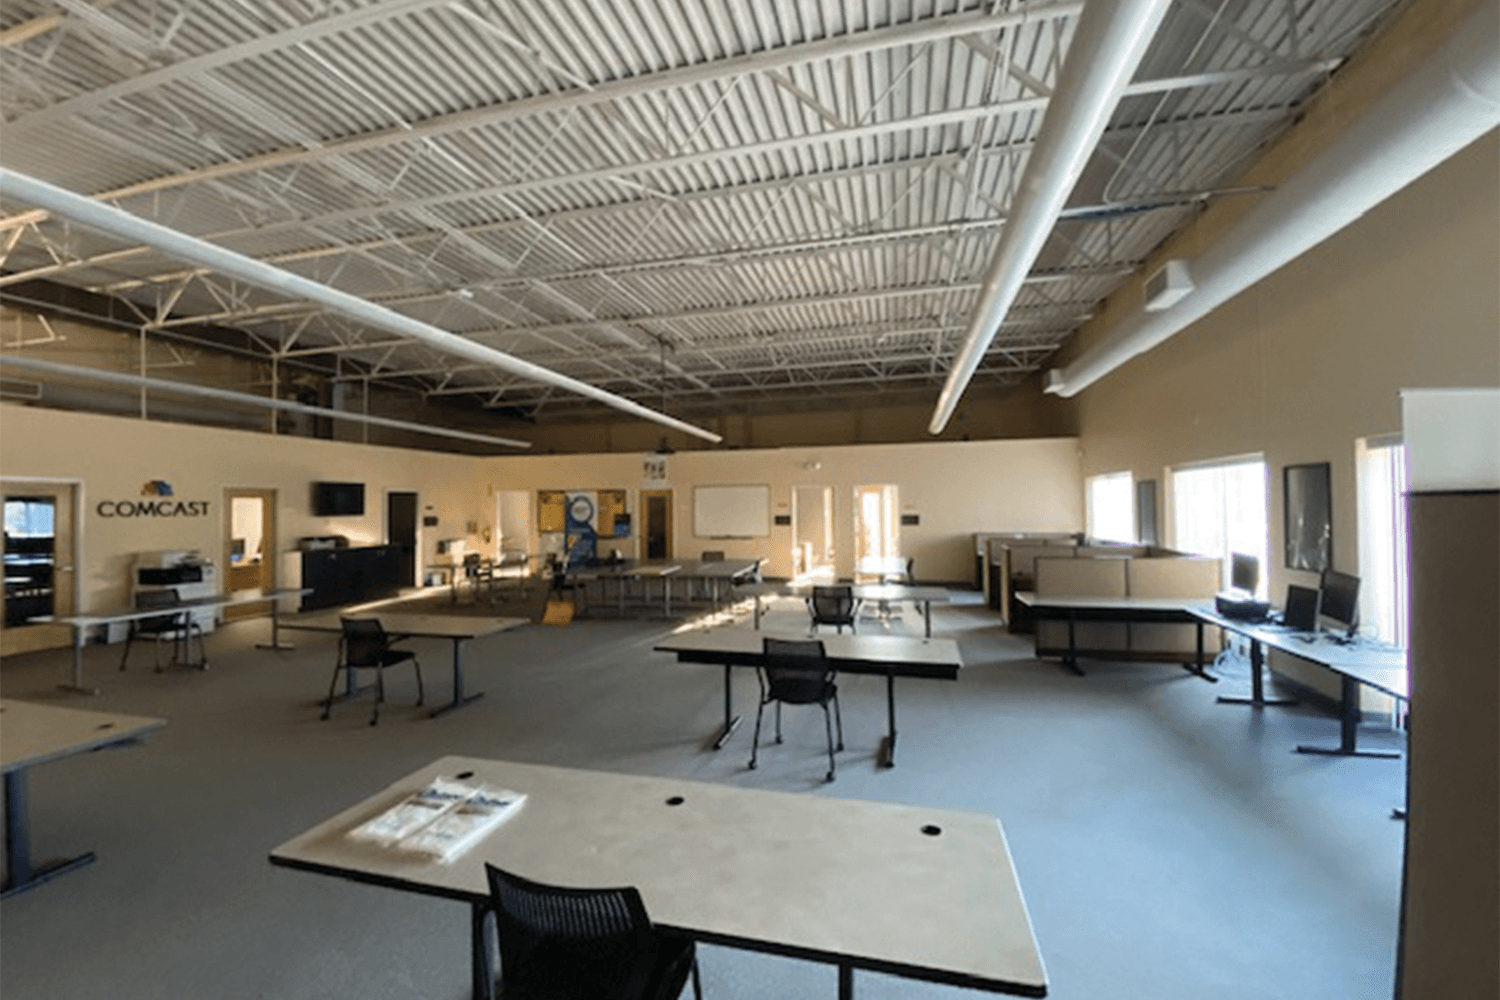 large open office area with desks and a high ceiling